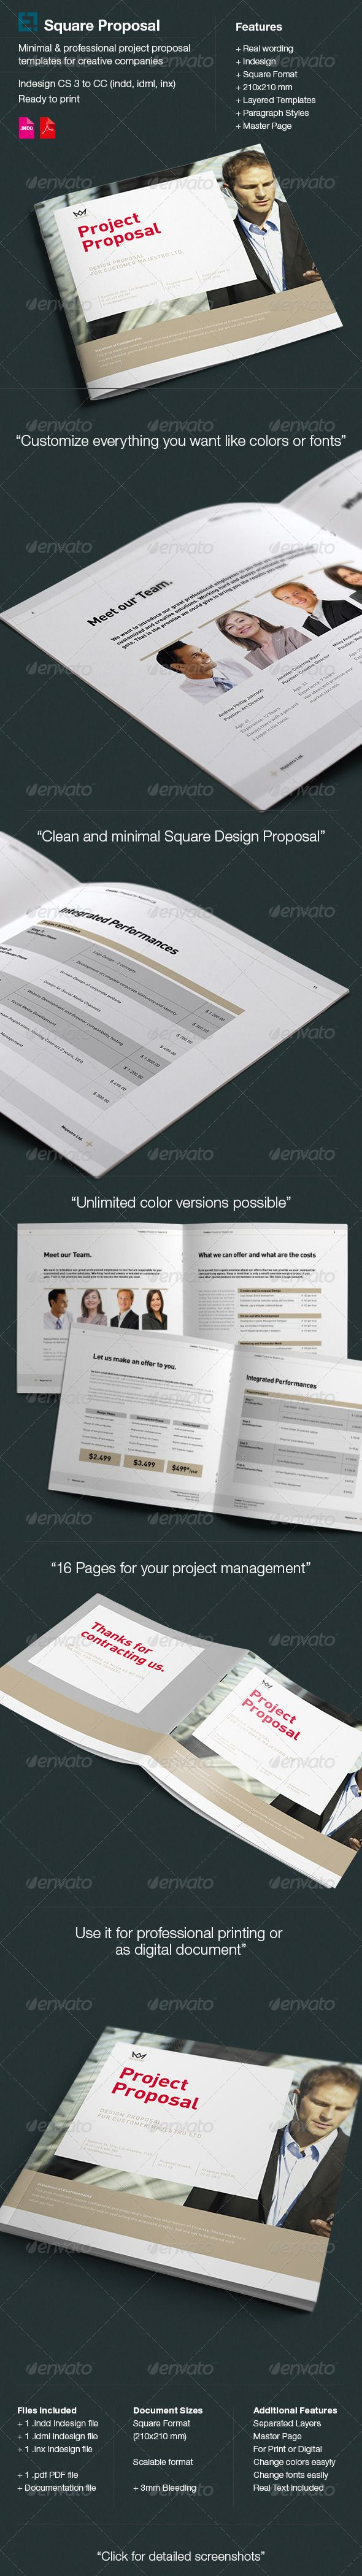 Proposal by egotype Proposal Square Design Features